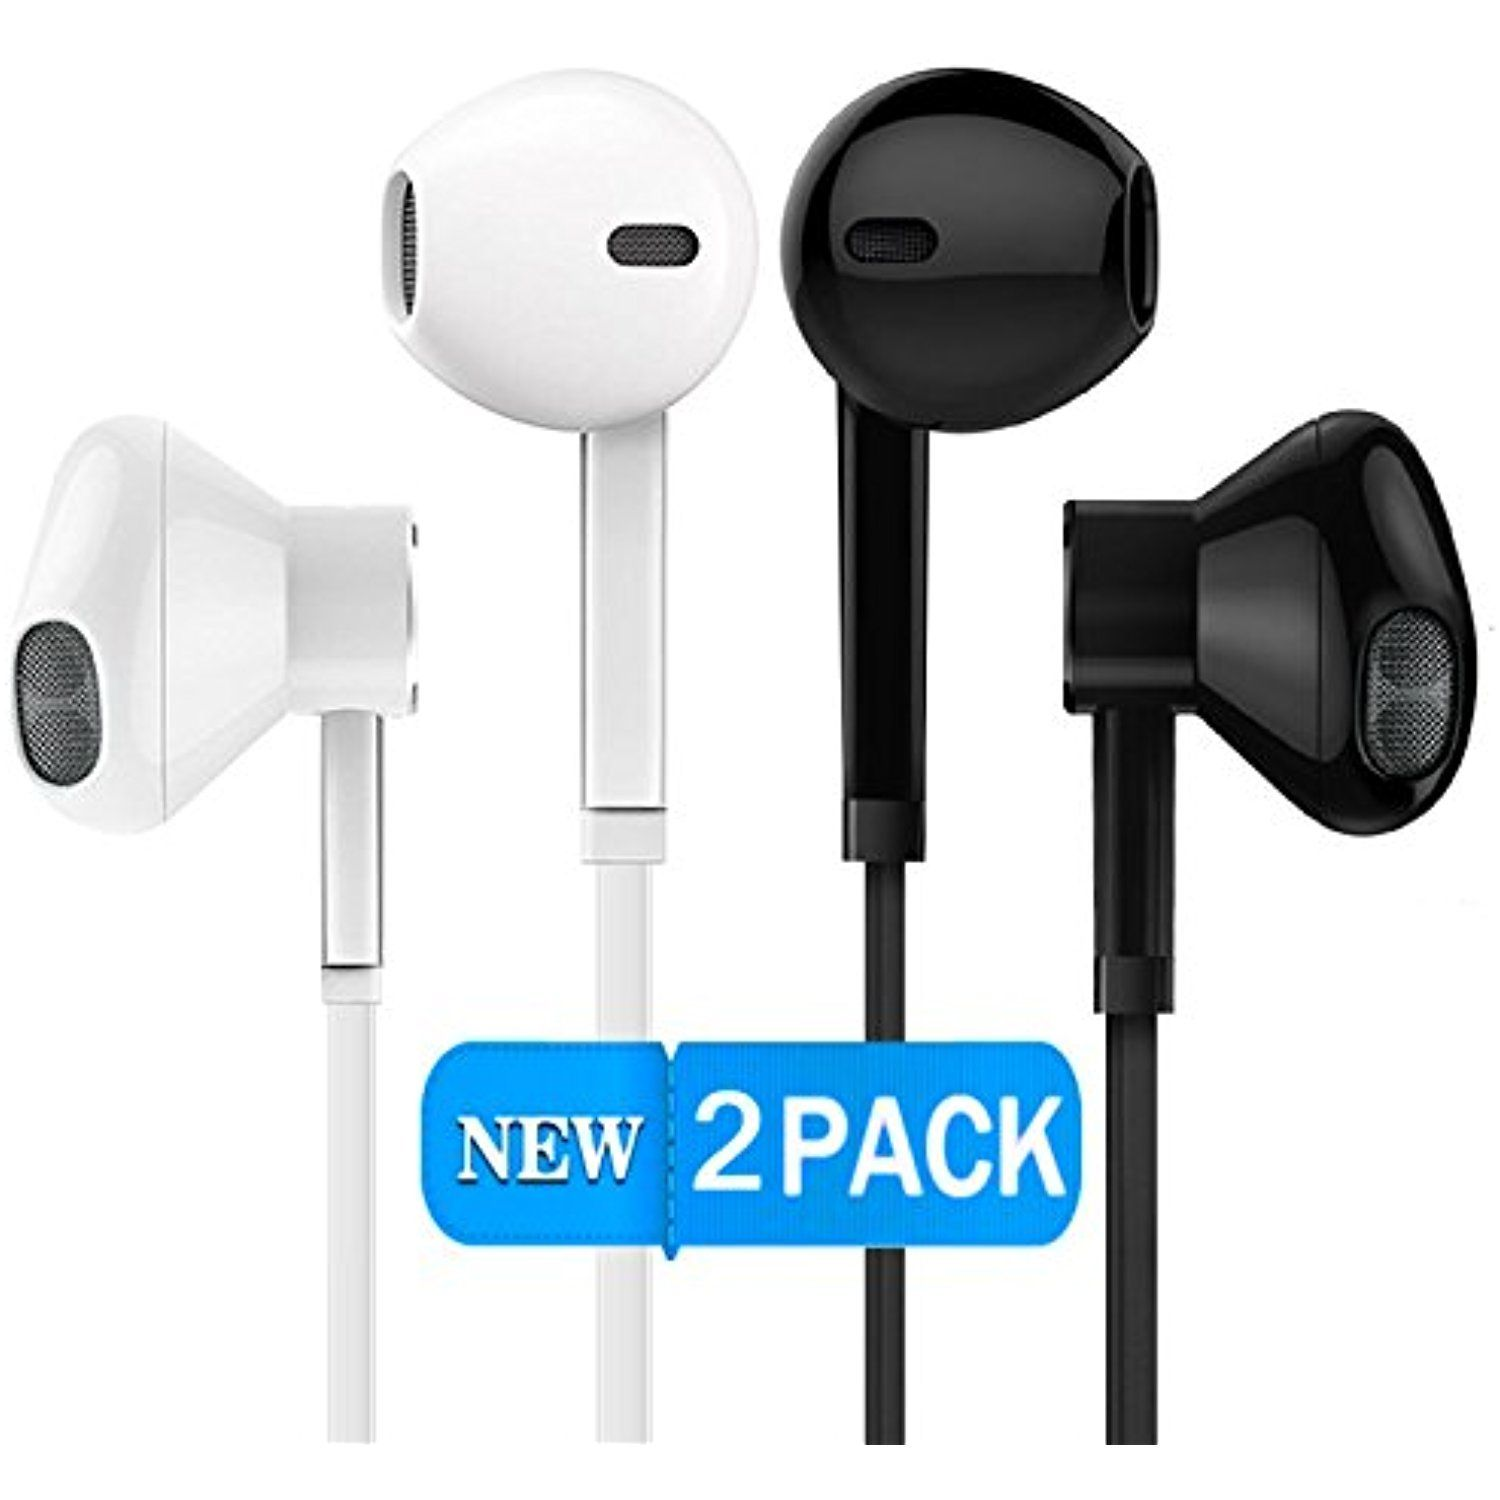 2 Pack Earphones With Microphone Premium Earbuds Stereo Headphones And Noise Isolating Headset For Apple Iphone Ipod Ipad Samsung Earbuds Earphone Headphone